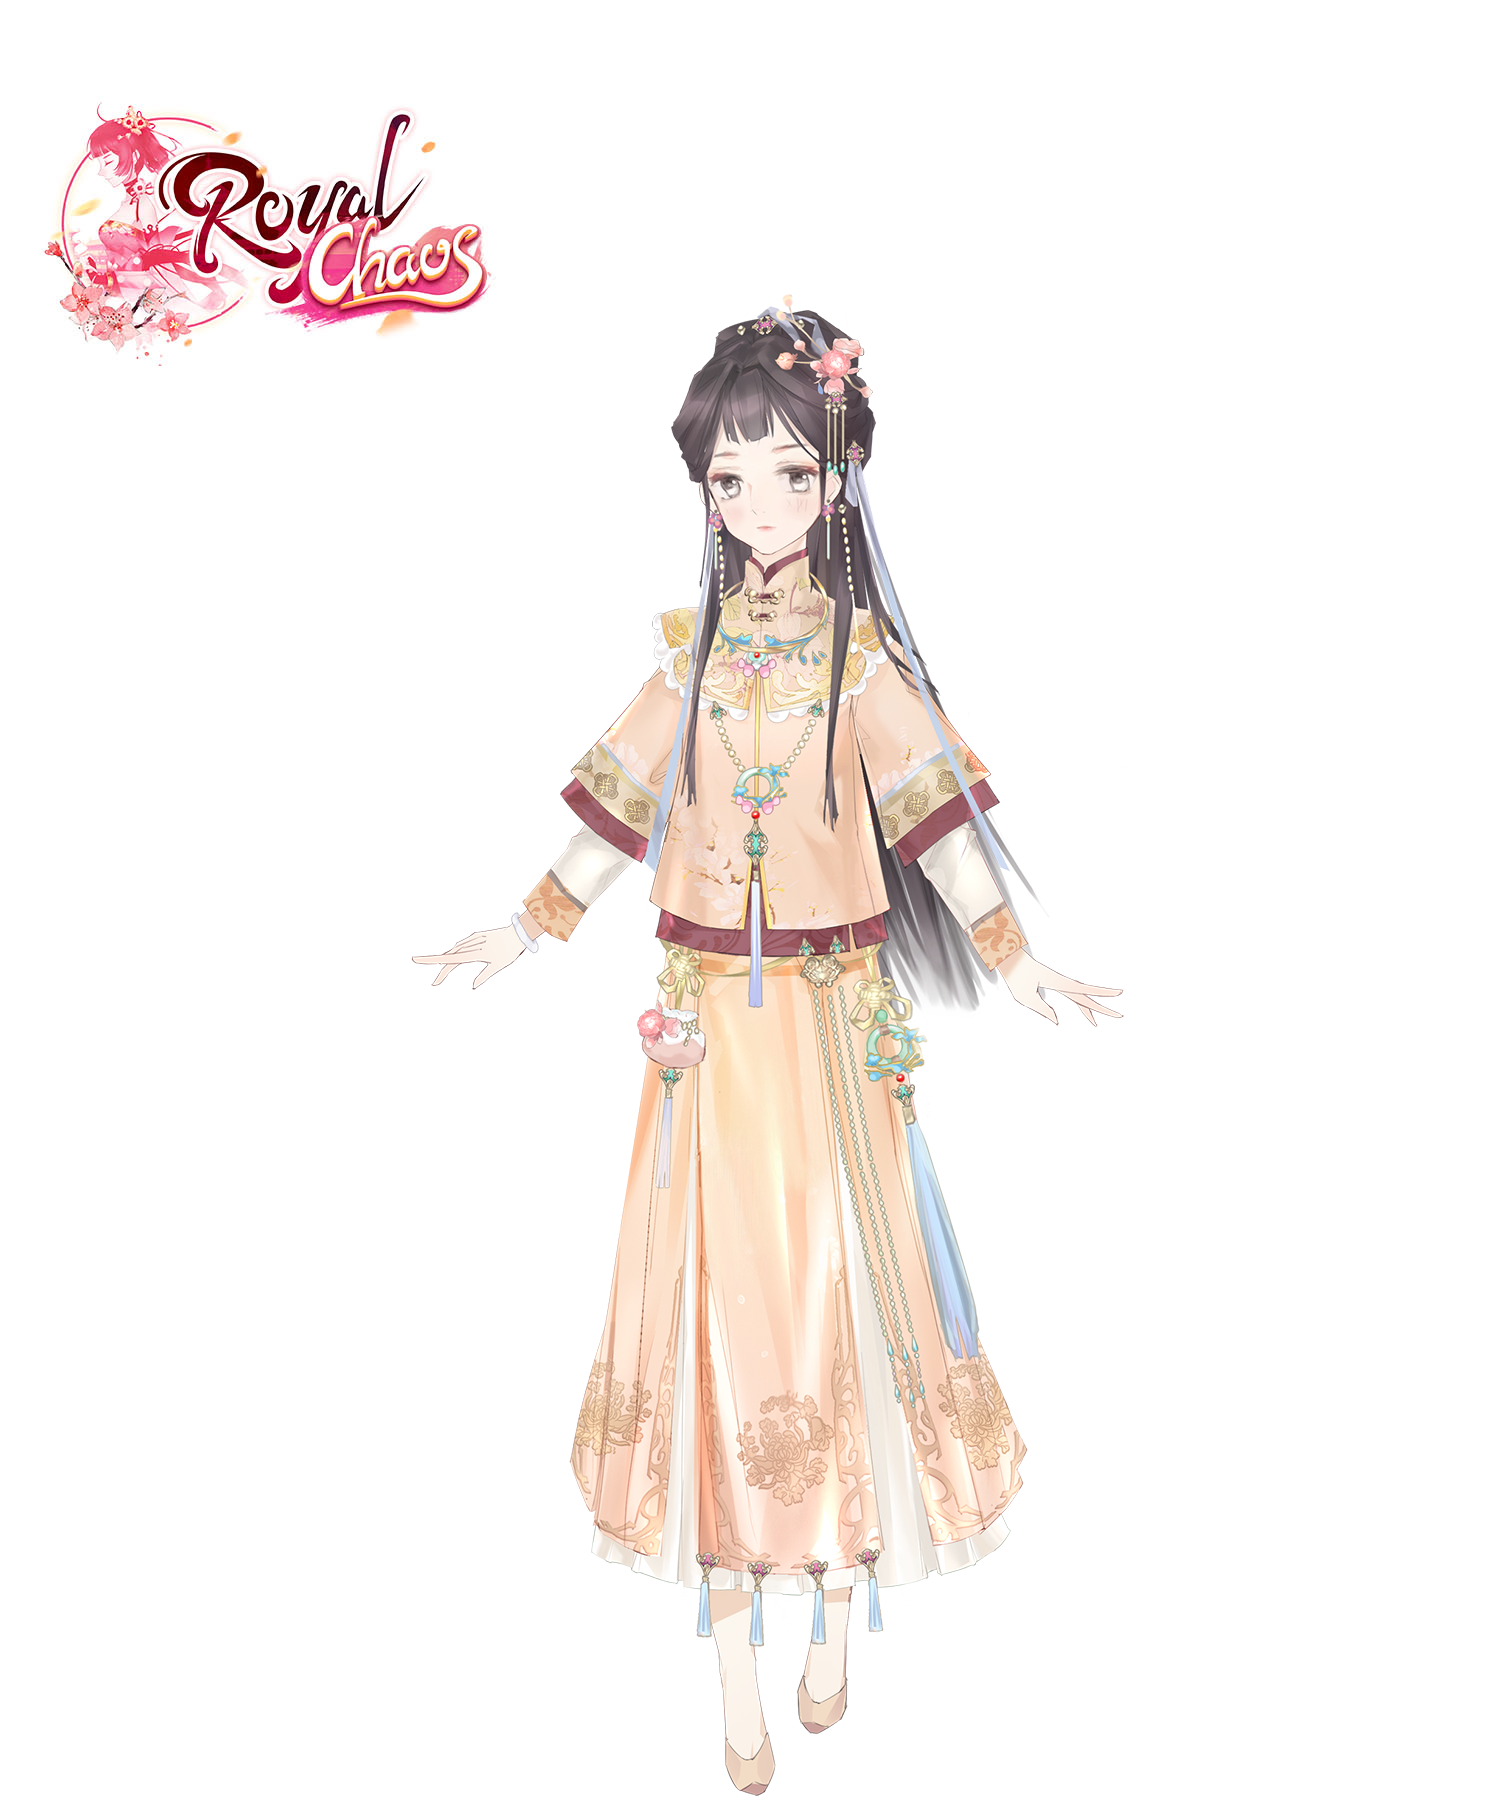 Pin by Royal Chaos on Royal Chaos Costumes in 2020 Game